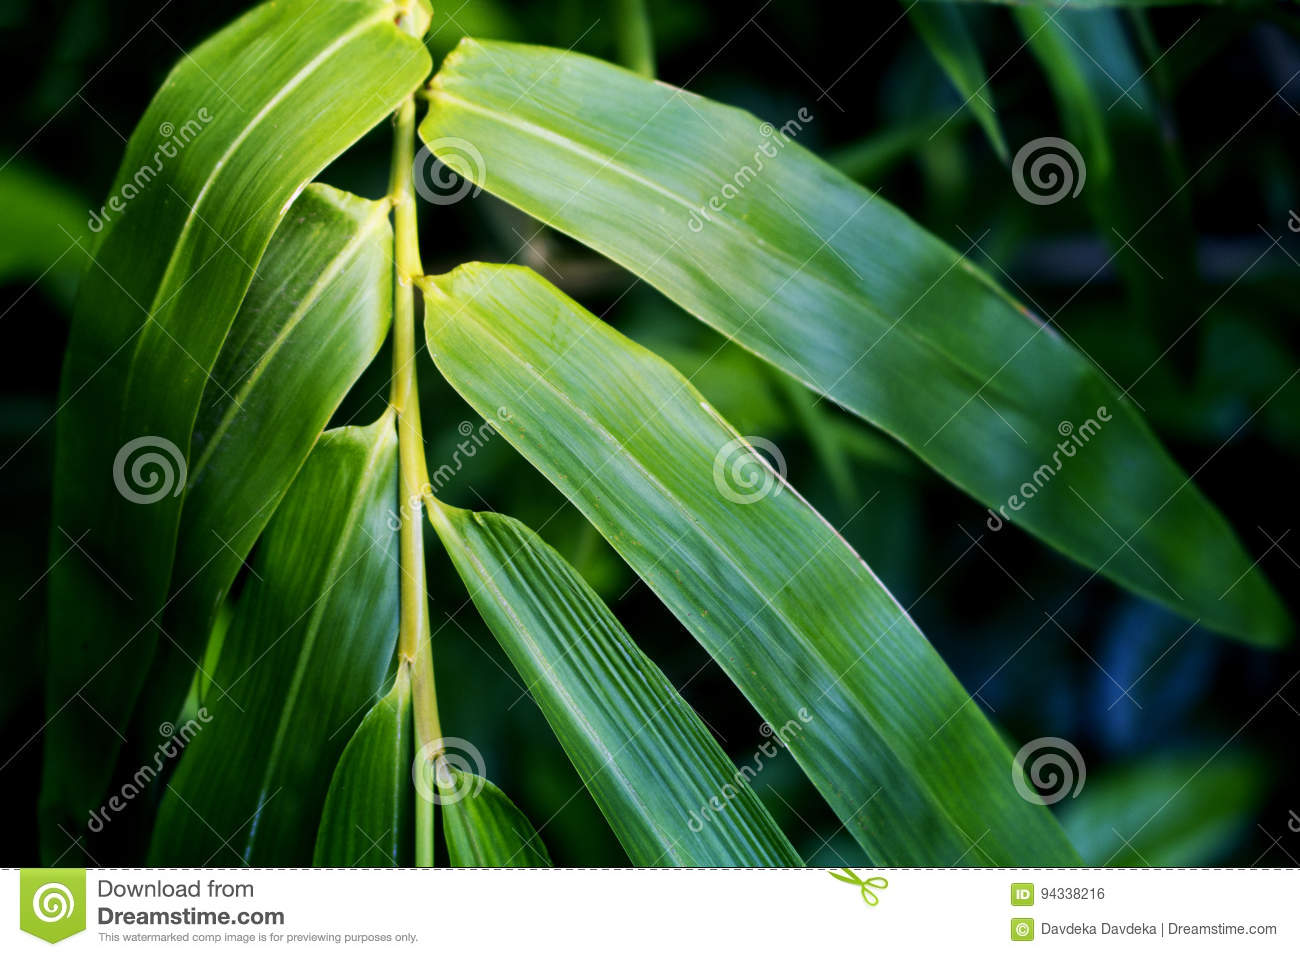 Bamboo Leaf Toned Photo For Spa Salon Design Meditation Wallpaper Zen Poster Stock Photo Image Of Growth Background 94338216